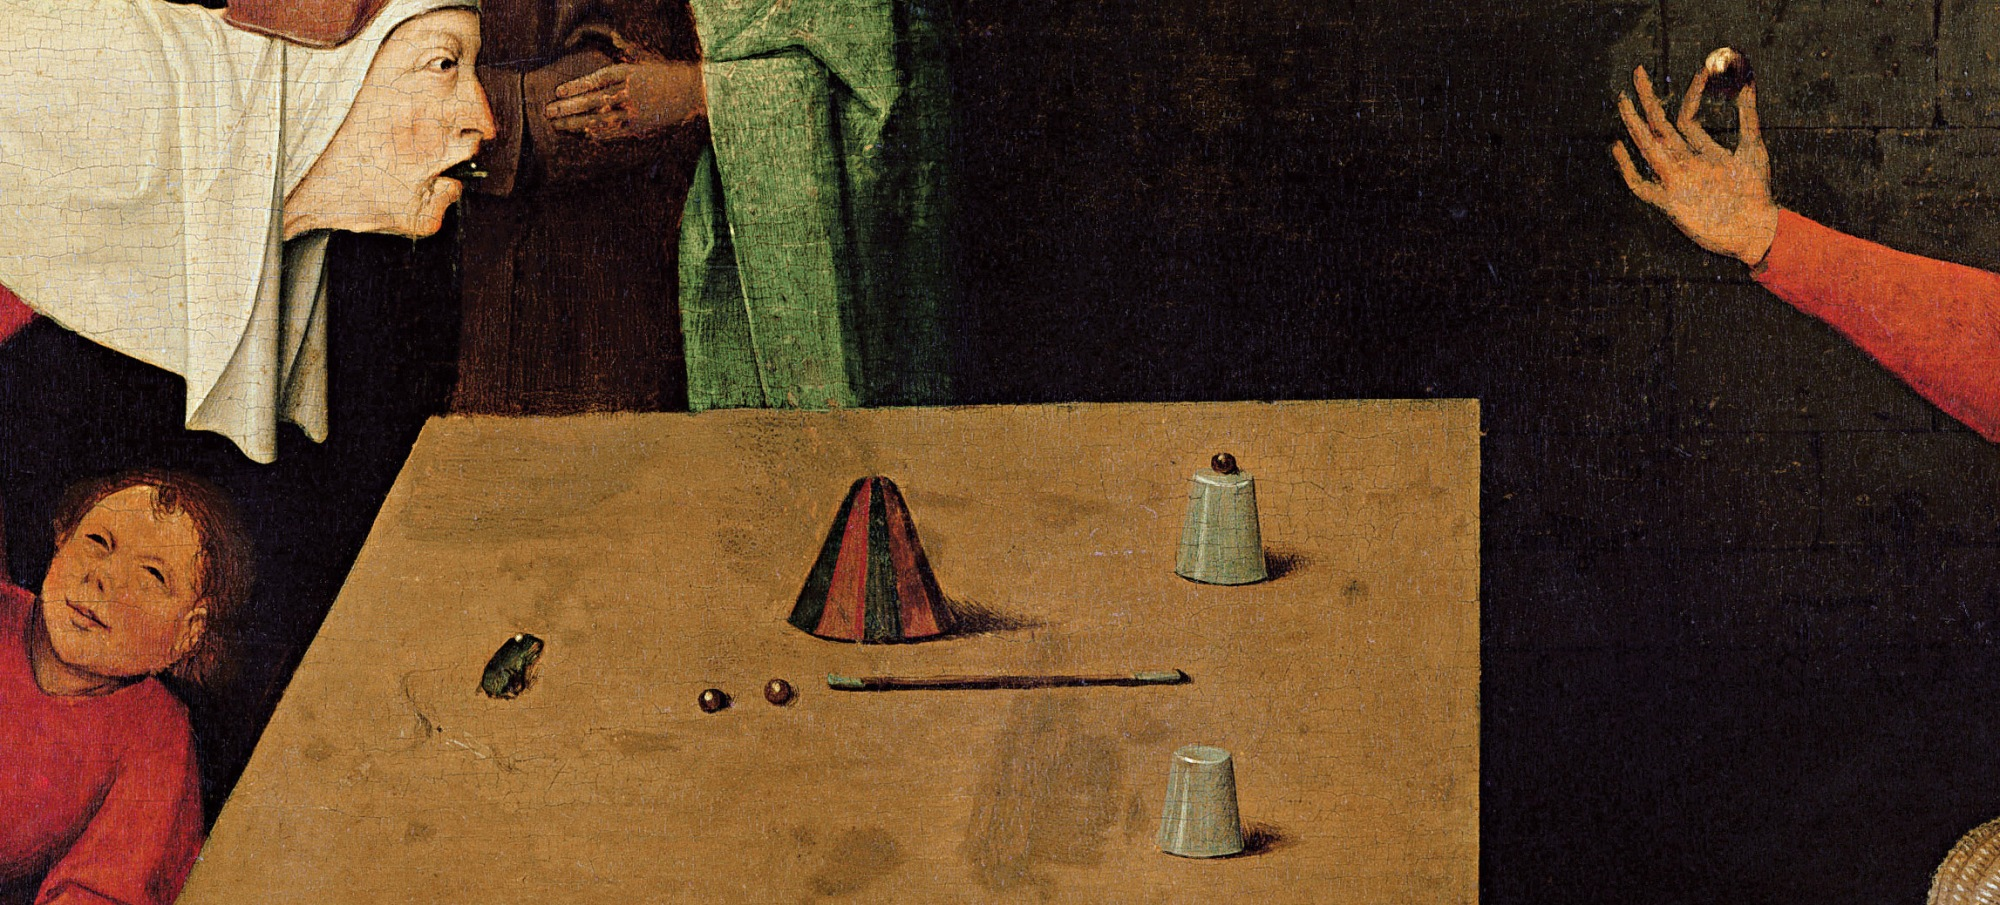 Hieronymus-Bosch_1475-1480_The-Conjurer detail